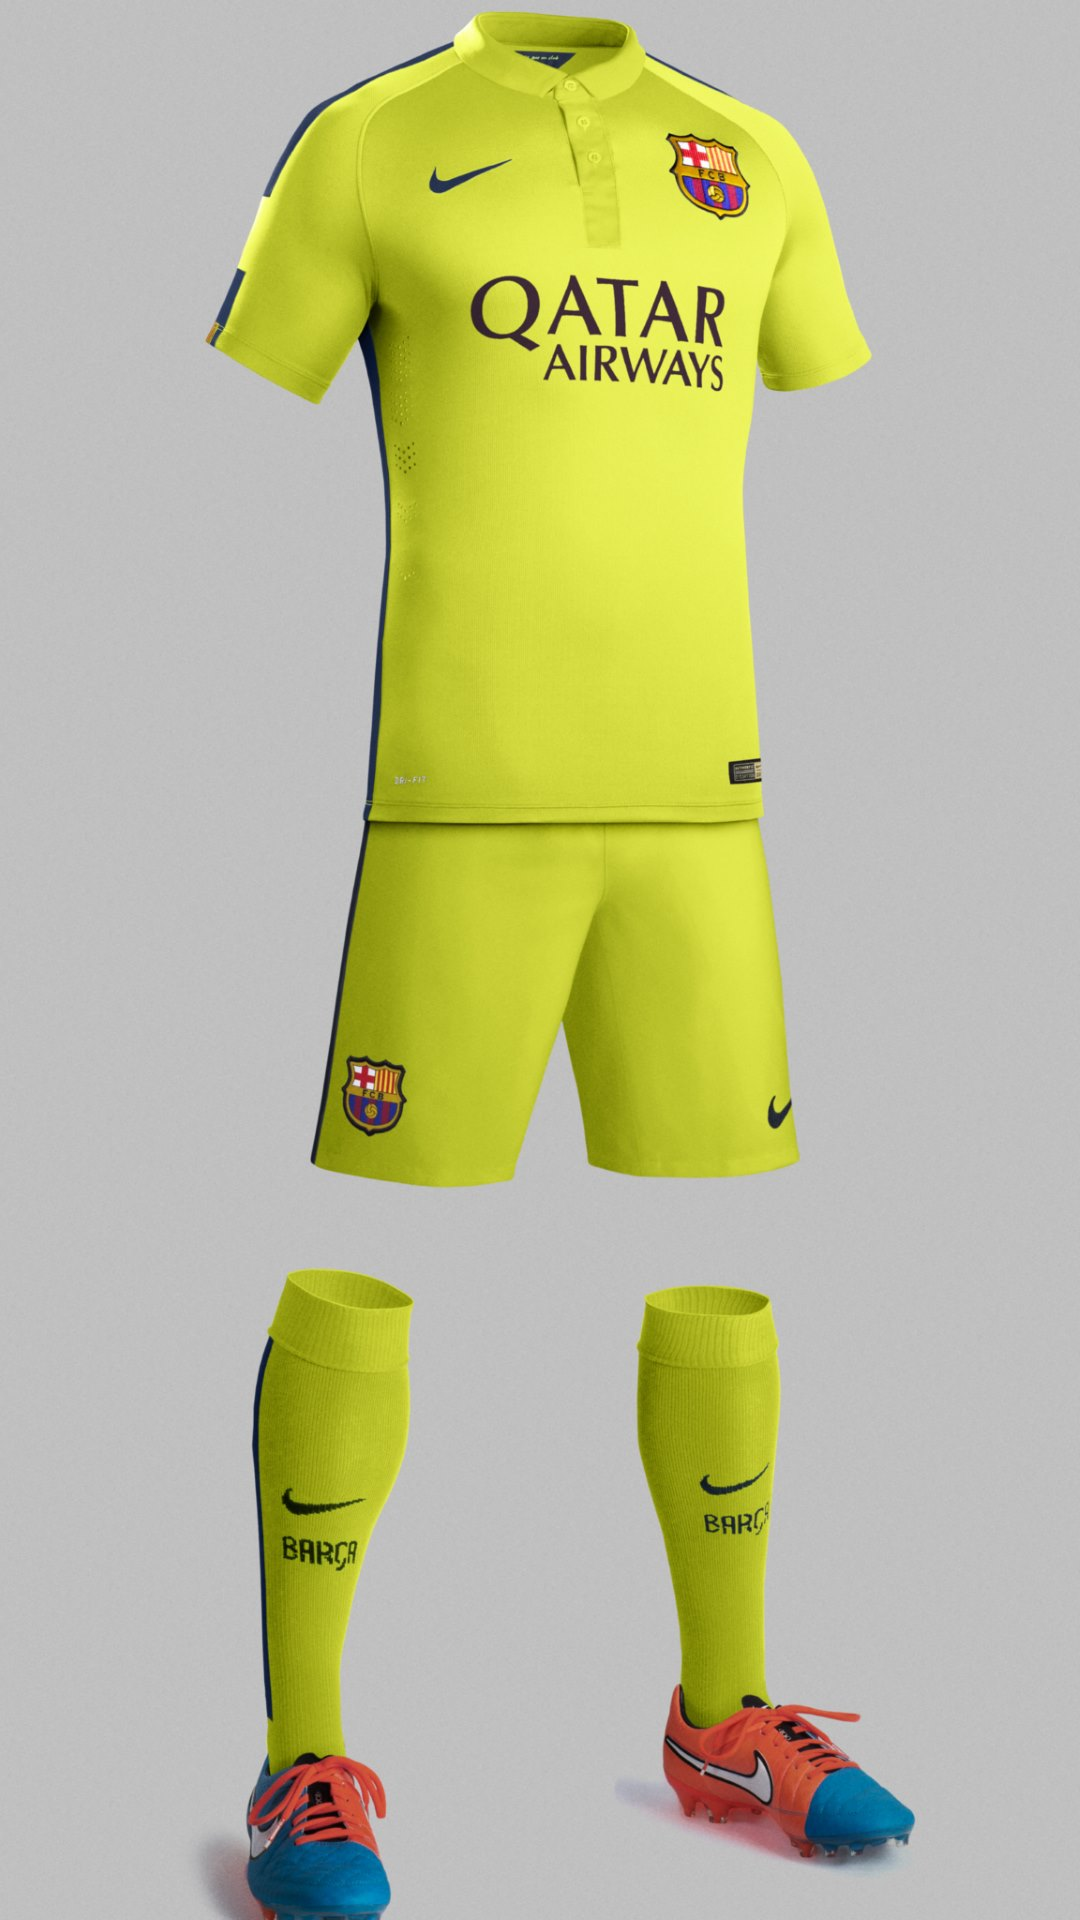 fc barcelona equipment